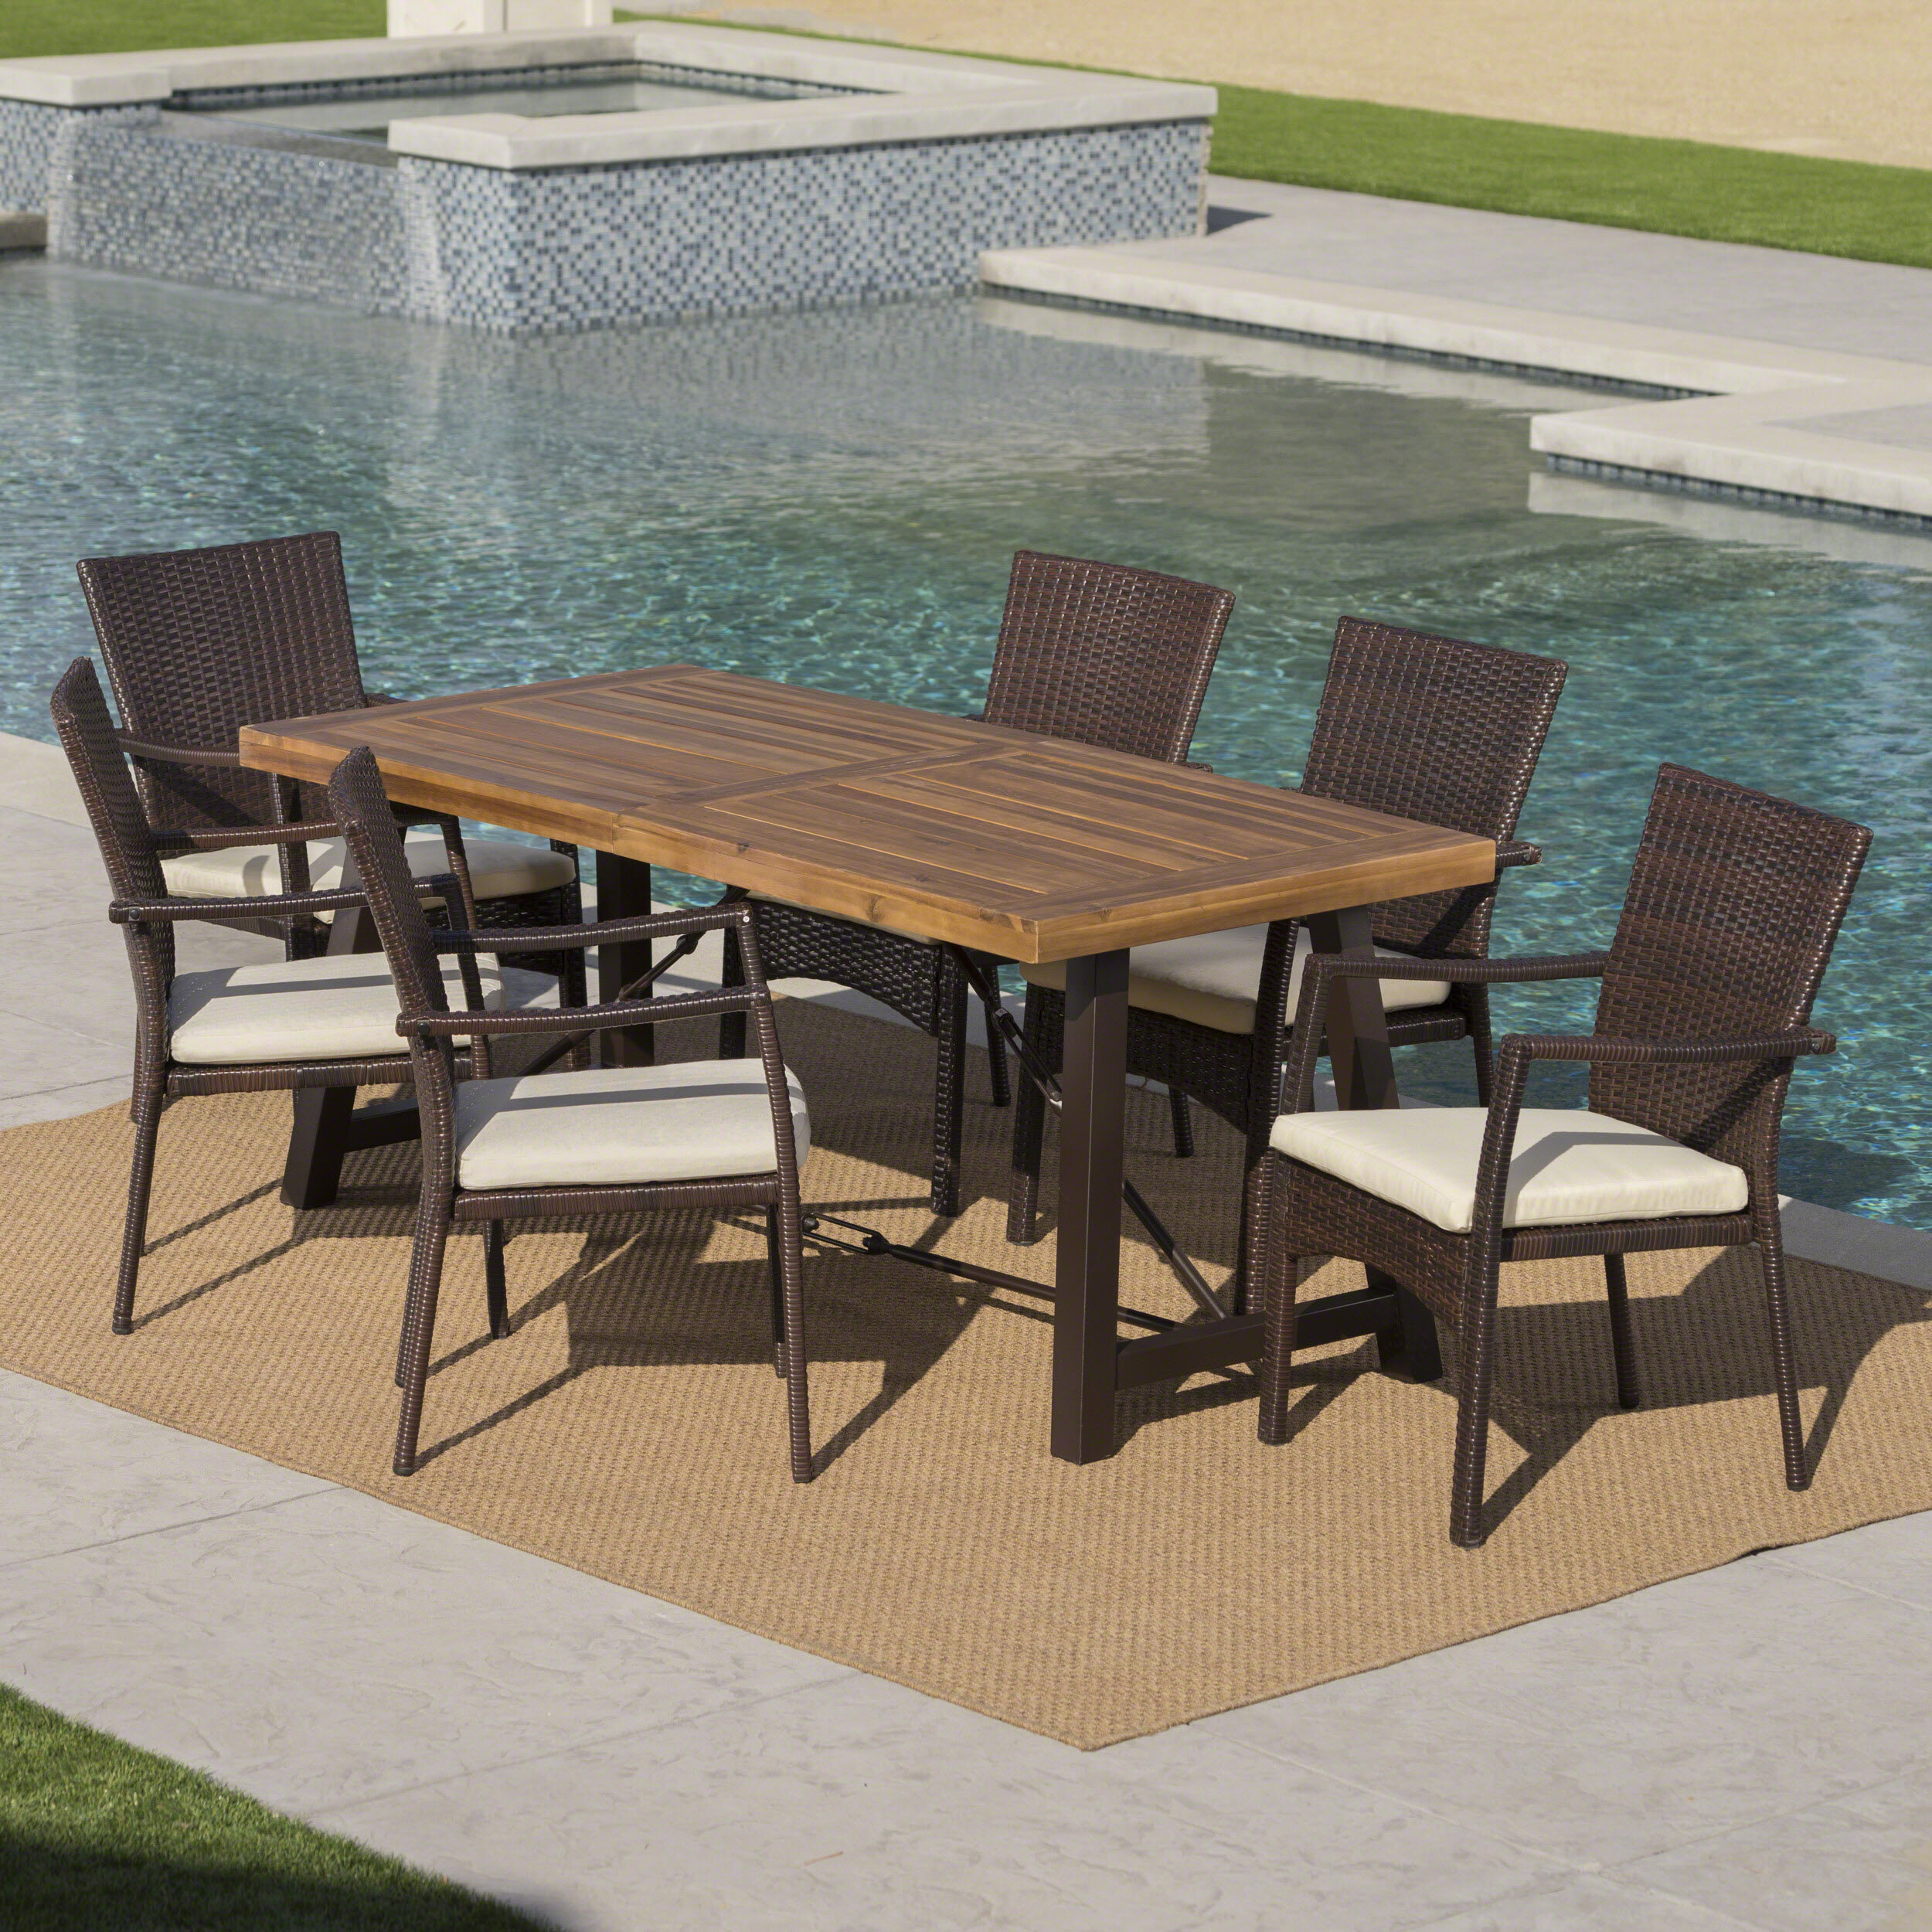 Charlton Home Avebury Outdoor 7 Piece Dining Set With Cushions Reviews Wayfair